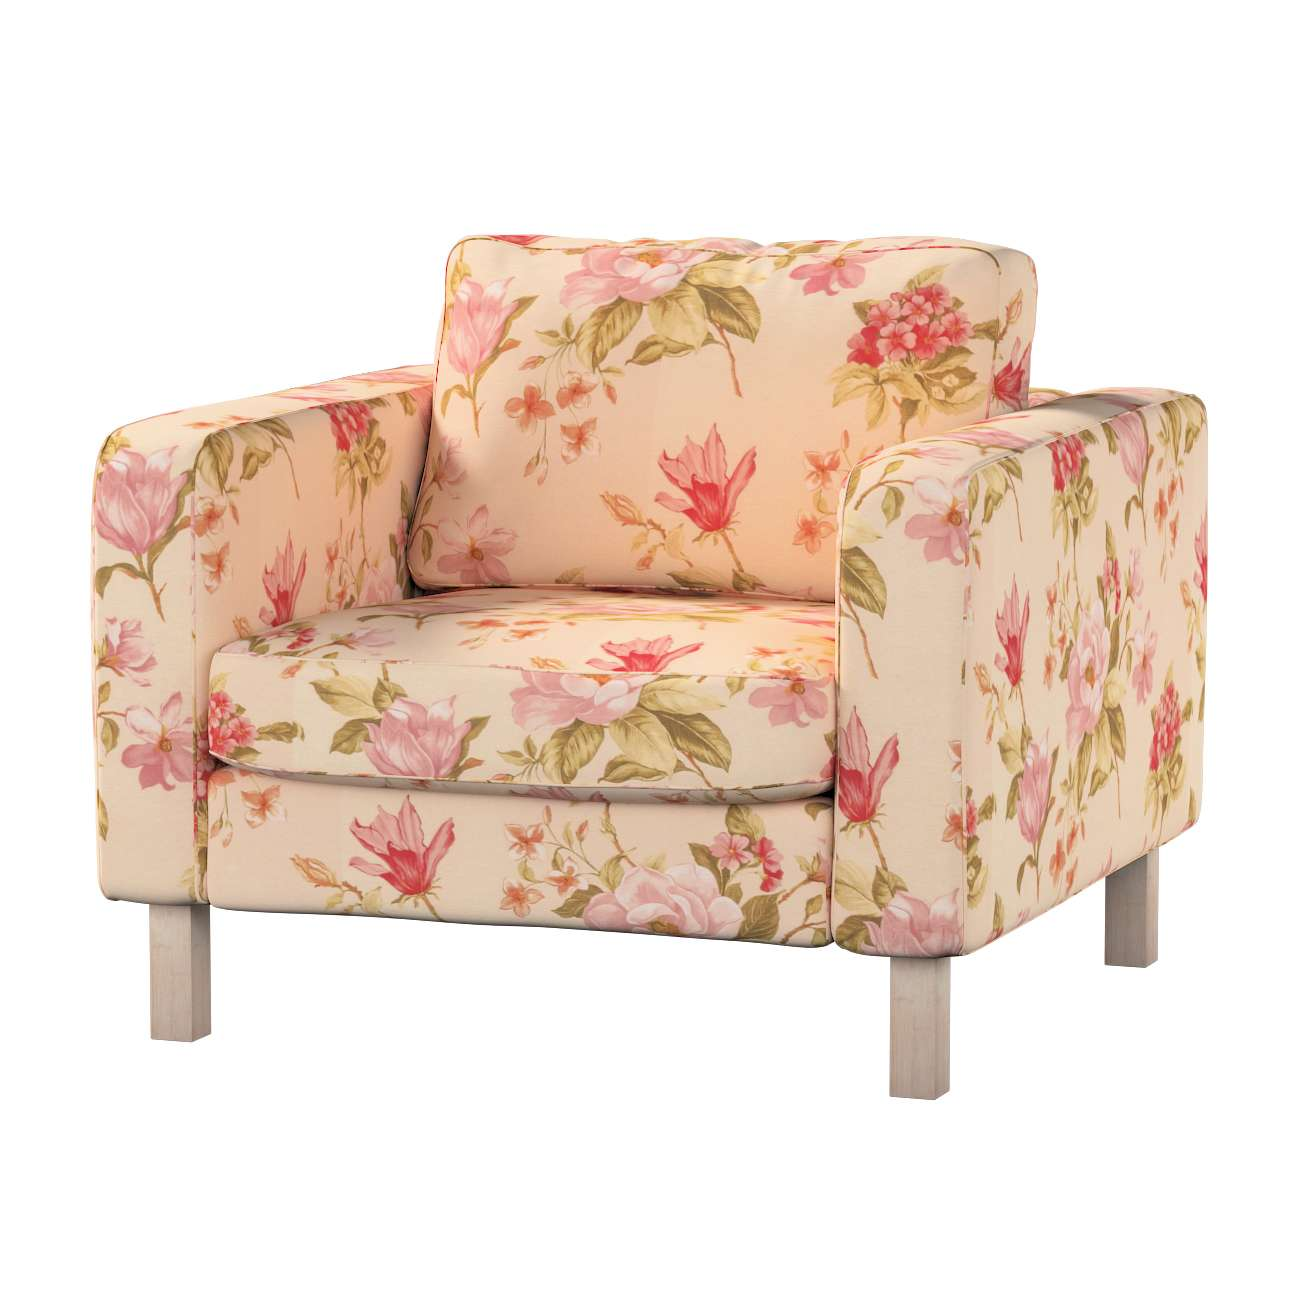 Karlstad armchair cover Karlstad armchair cover in collection Londres, fabric: 123-05